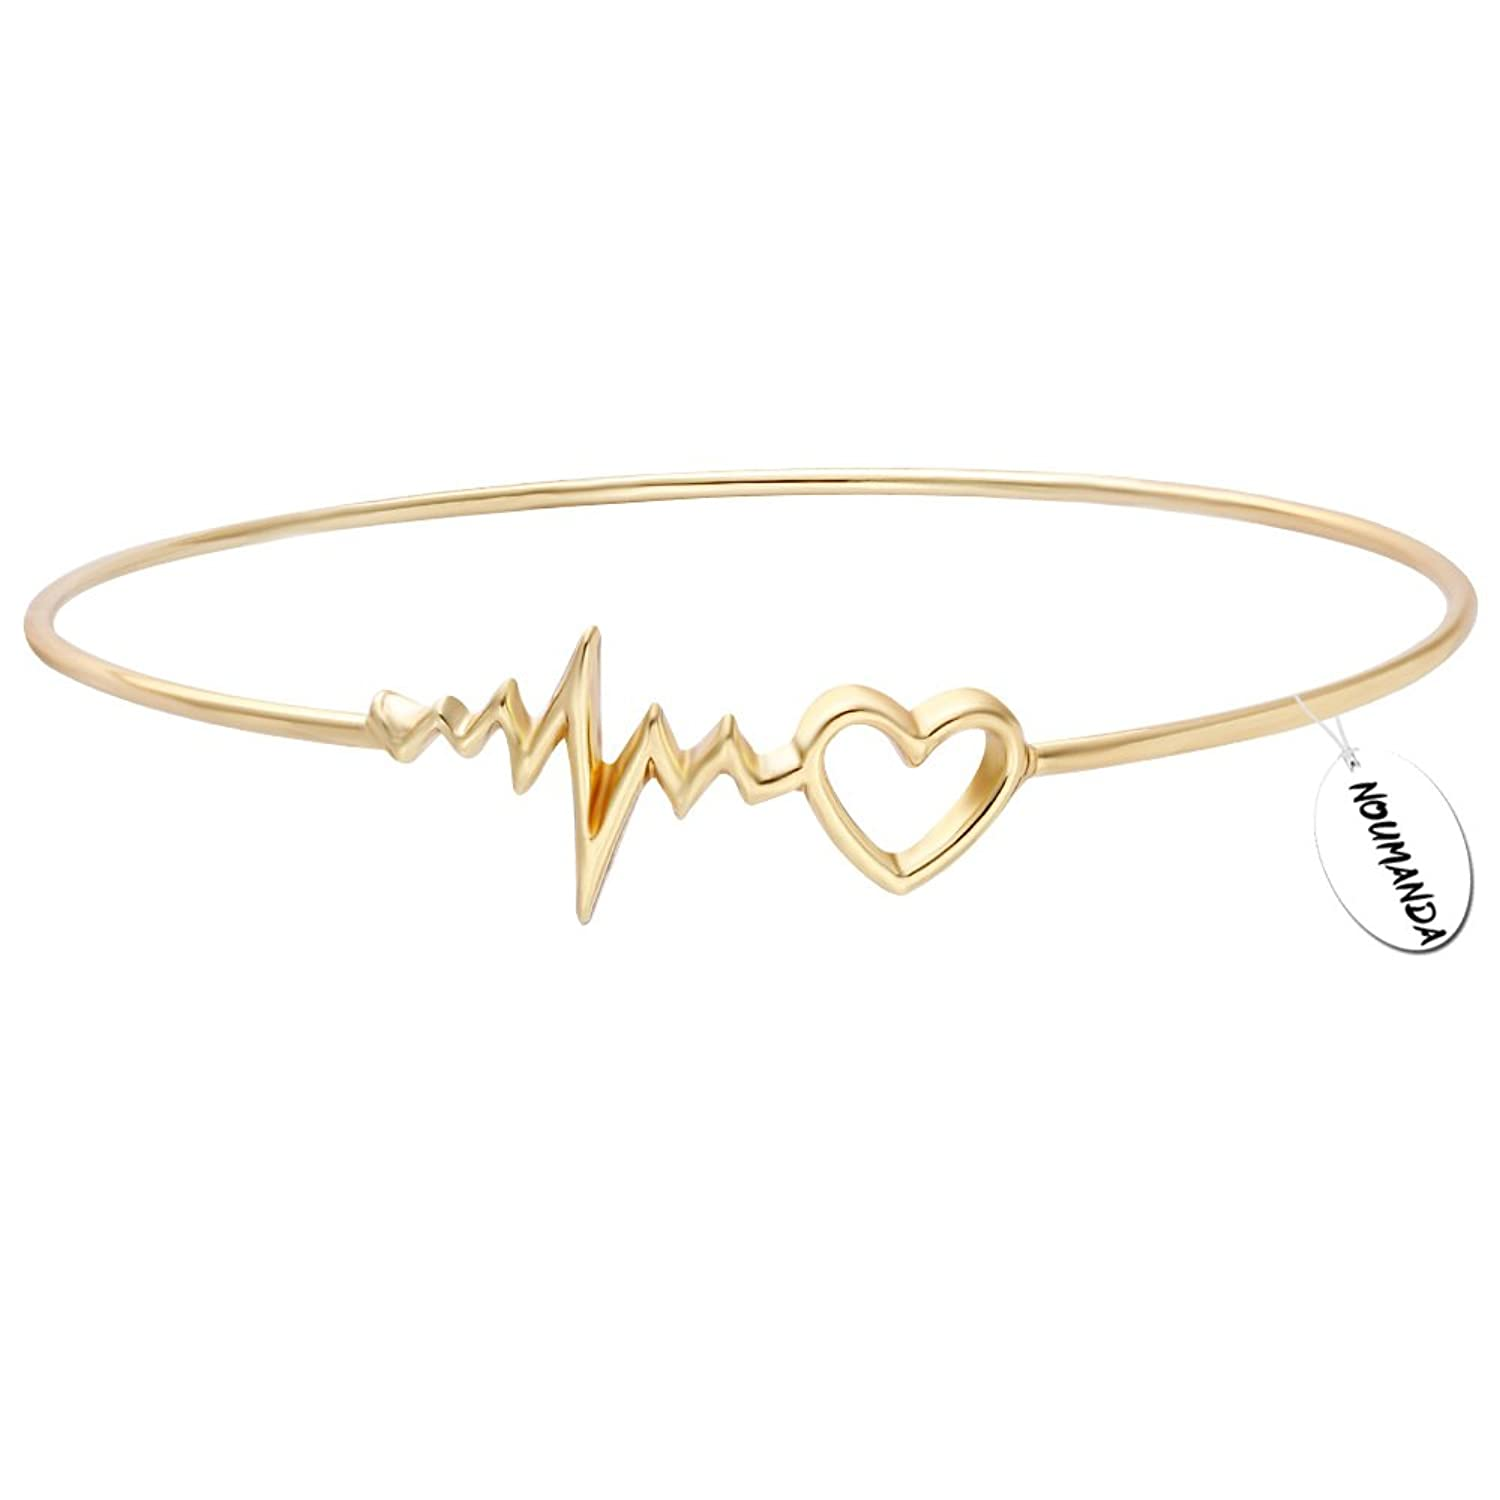 bracelet steel copper holistic link product cardiac stainless mens magnets magnetic min clad